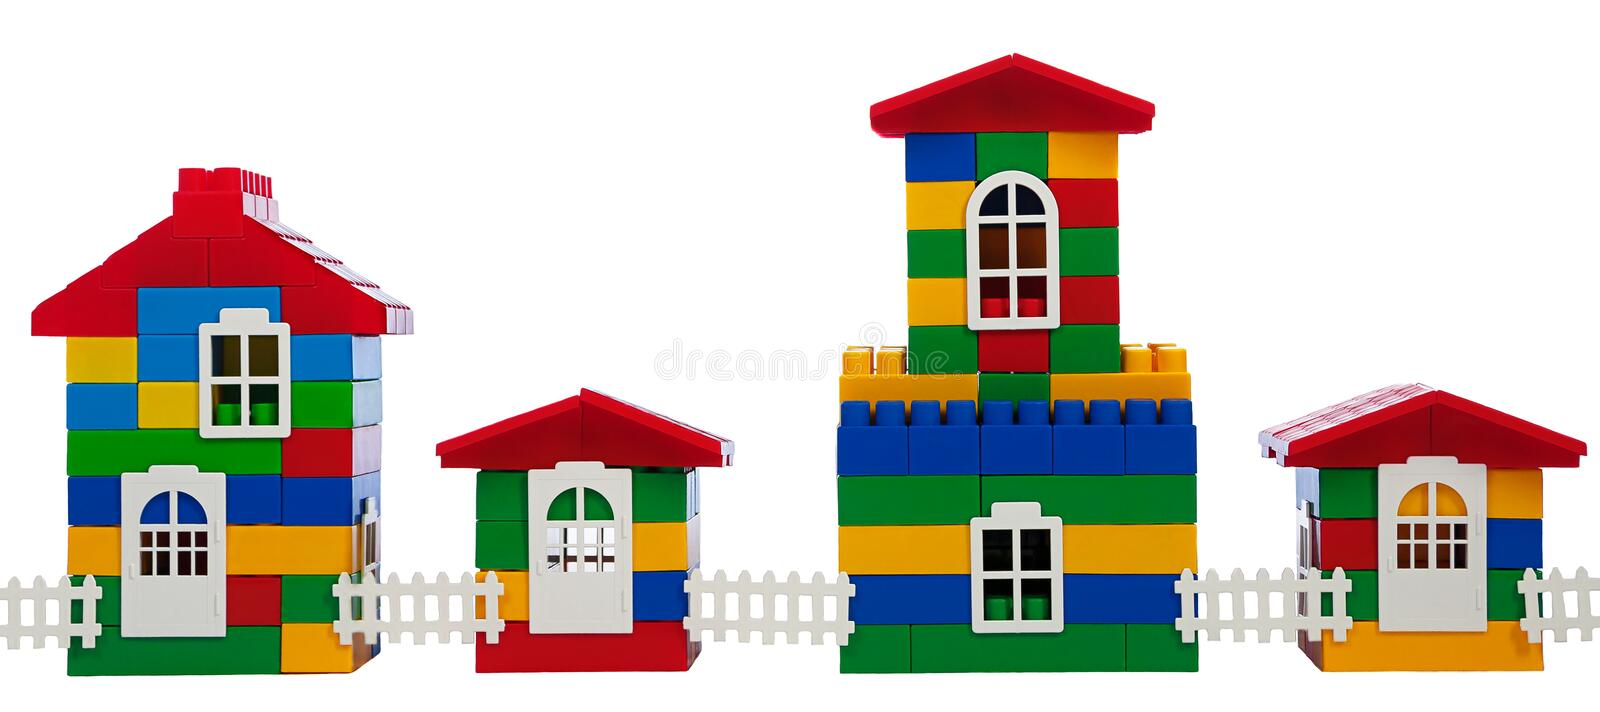 Toy Colorful  Houses Royalty Free Stock Photography